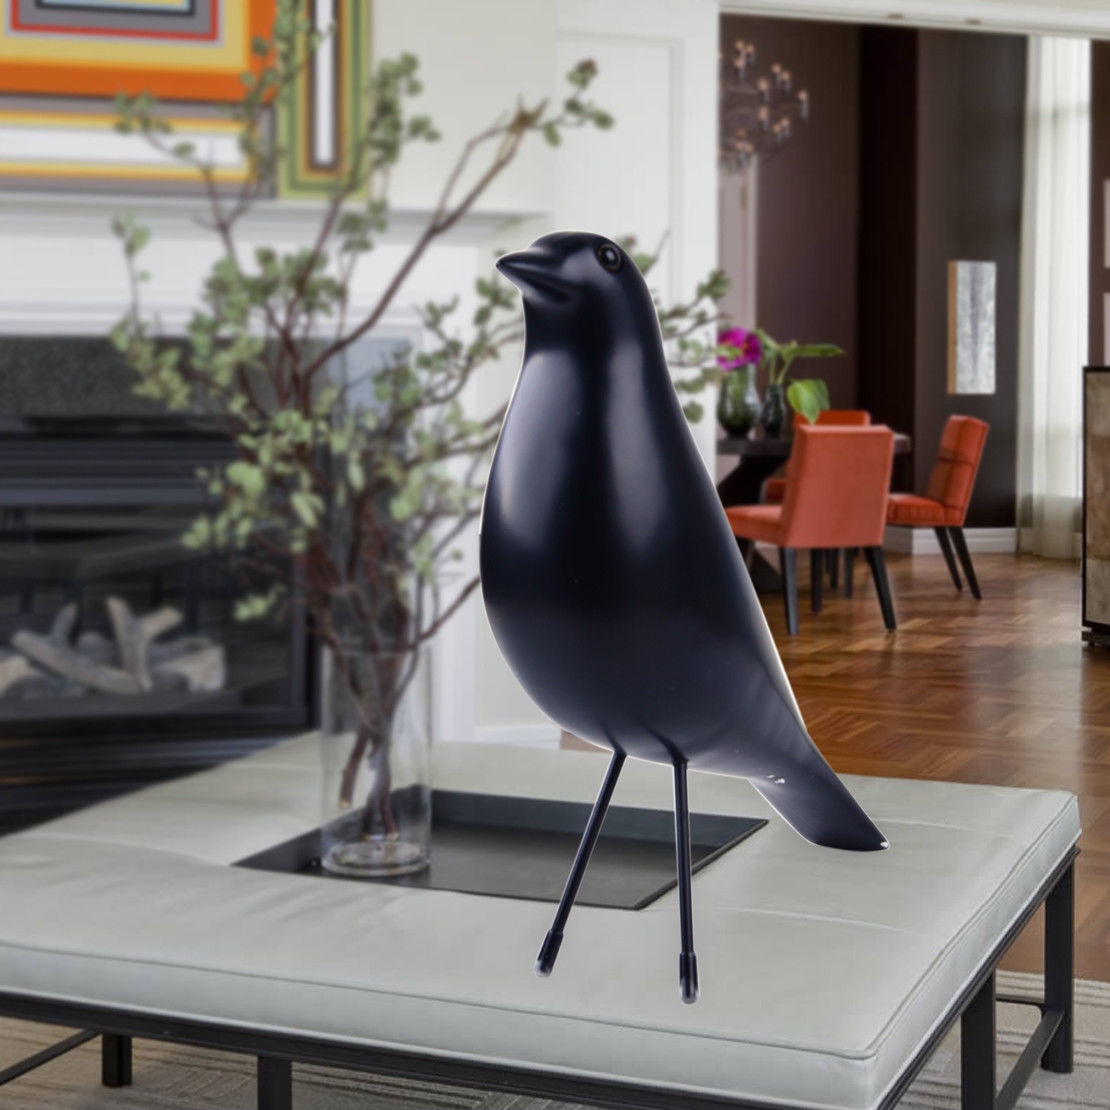 Eames House Bird Details About Retro Black Eames House Bird Home Decor Desk Ornament Resin Office Pigeon Gift